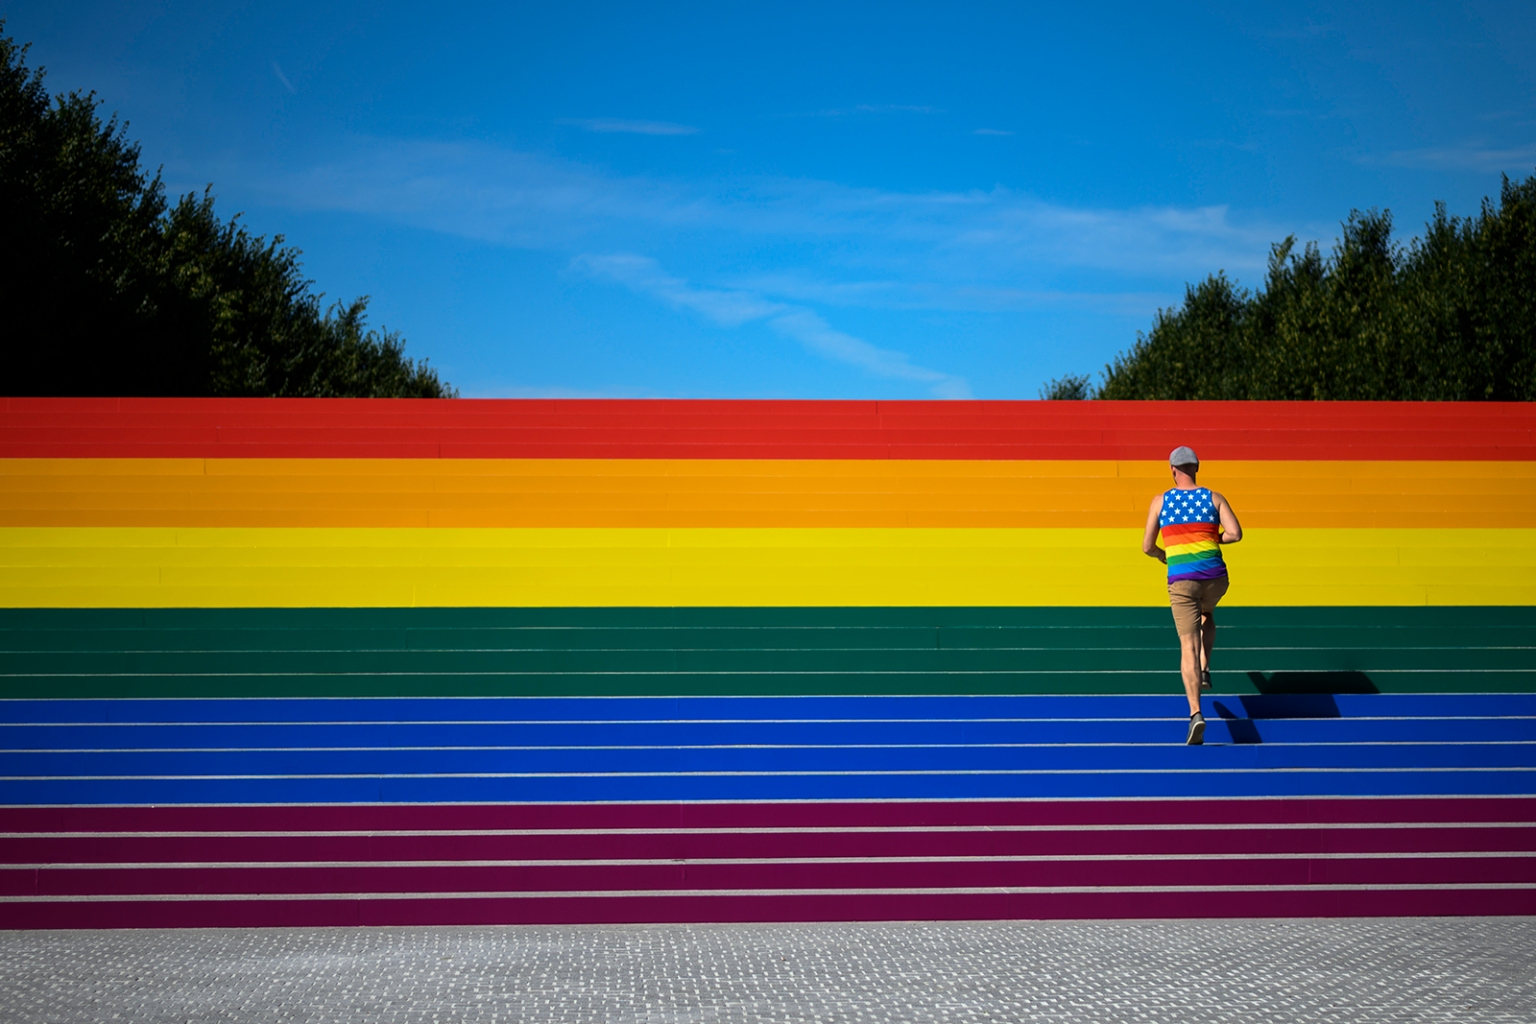 A man walks on steps covered in rainbow colors for Pride Month at Franklin D. Roosevelt Four Freedoms Park in New York City on June 15. Organizers say it is the largest LGBT pride flag in New York City, measuring around 12 by 100 feet. JOHANNES EISELE/AFP/Getty Images